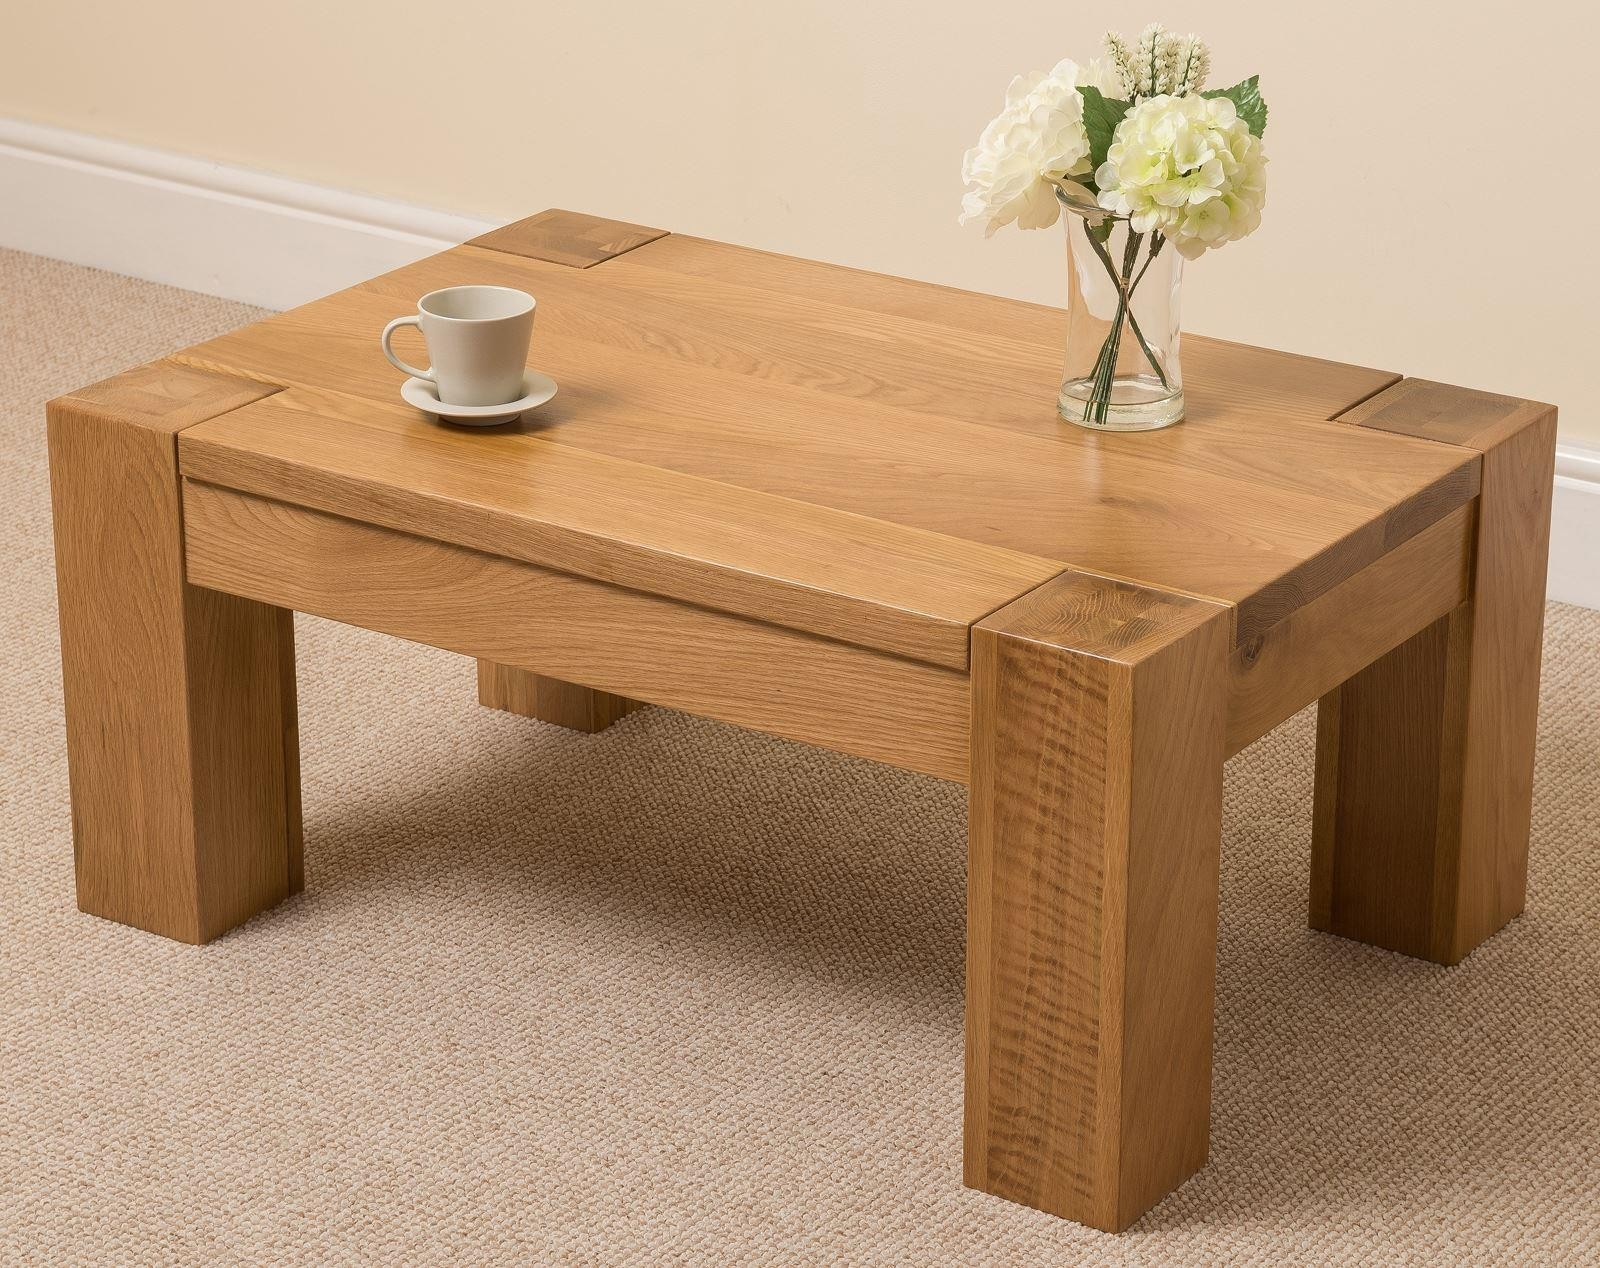 Solid wood coffee table design images photos pictures for Wood table top designs